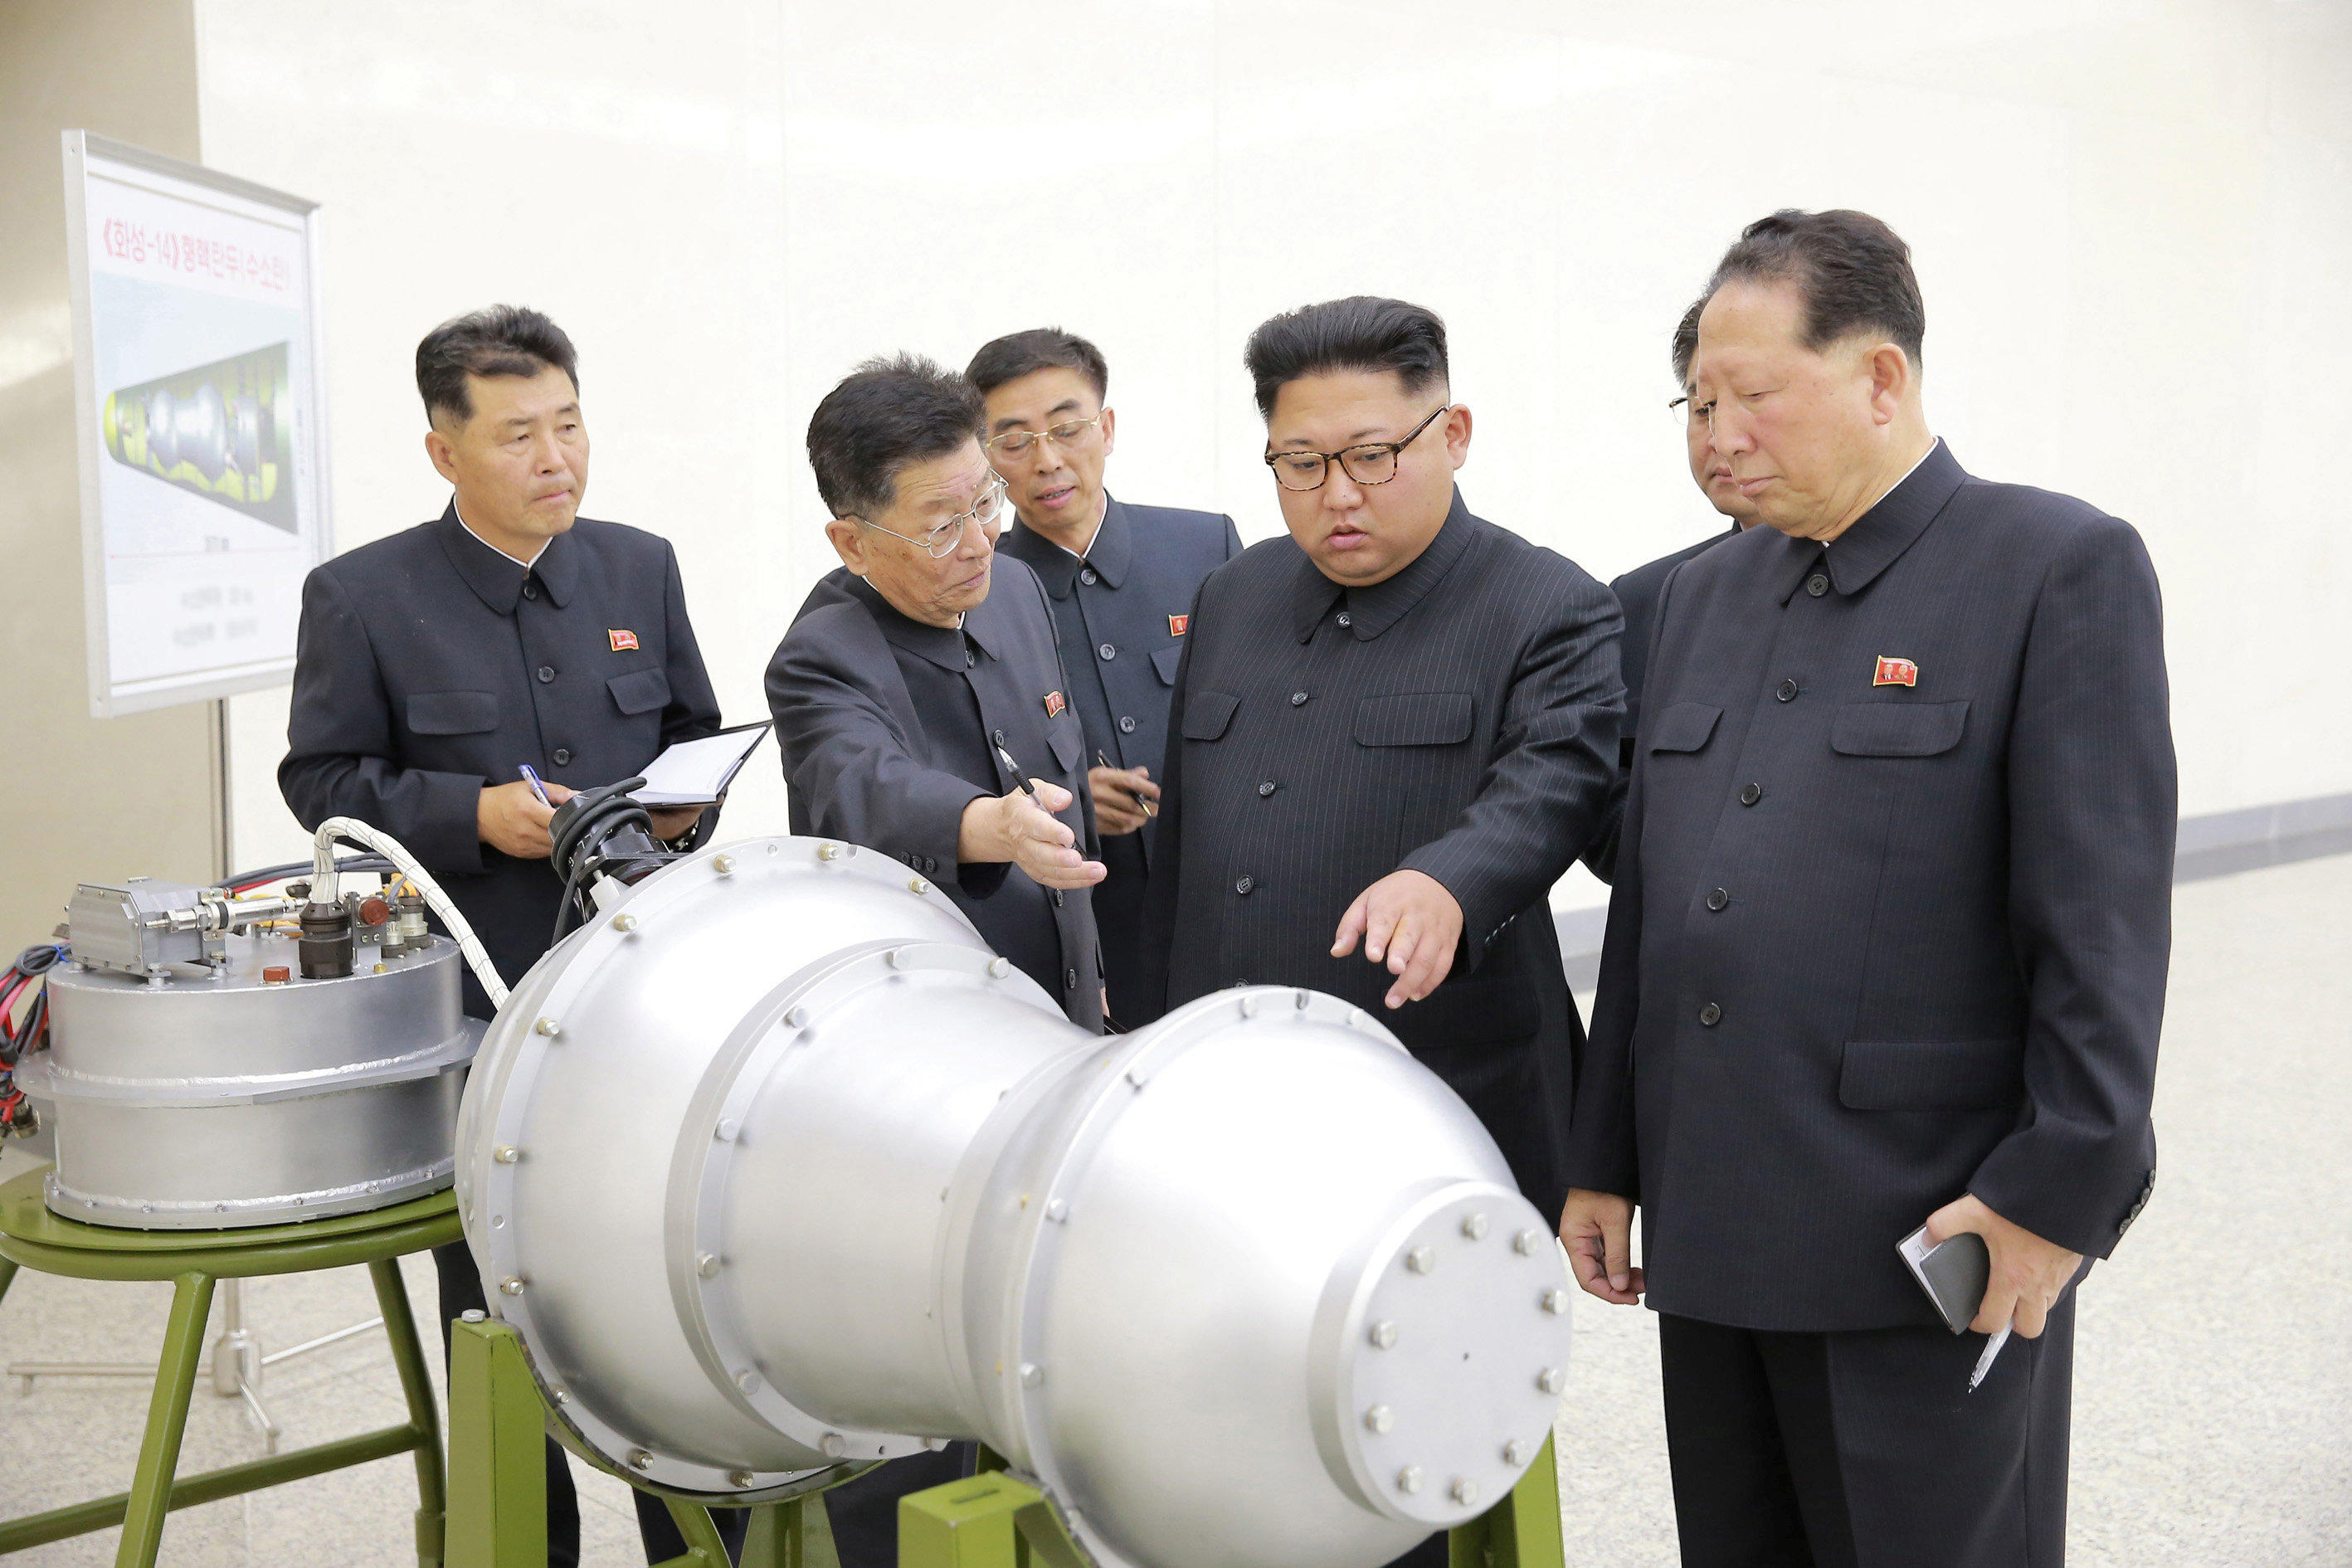 North Korea leader Kim Jong Un could have 60 nuclear weapons: South Korea  minister estimates atomic bomb count - CBS News